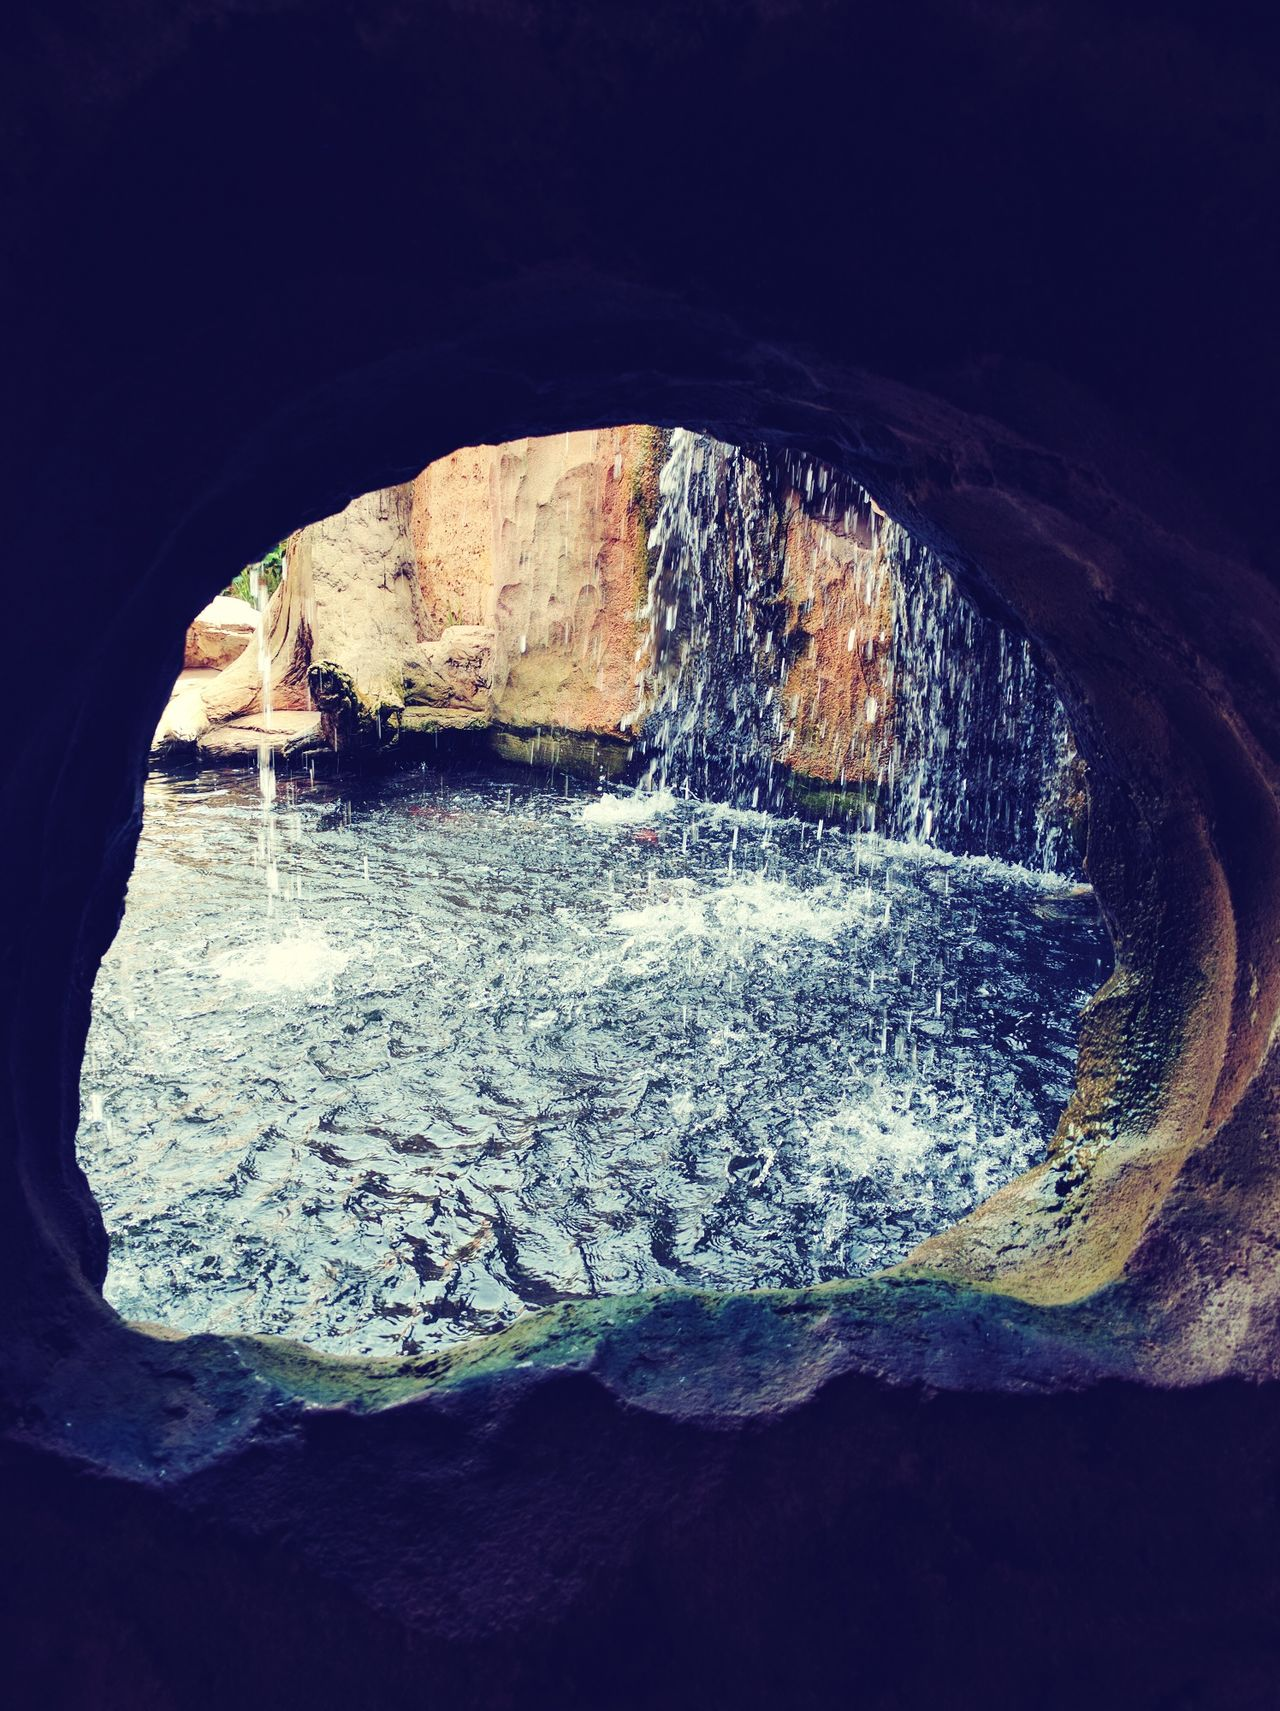 3XSPUnity 3XSPhotographyUnity No People Nature Outdoors Close-up Day Sky Water Waterfall Cave Drops Rocks Wet